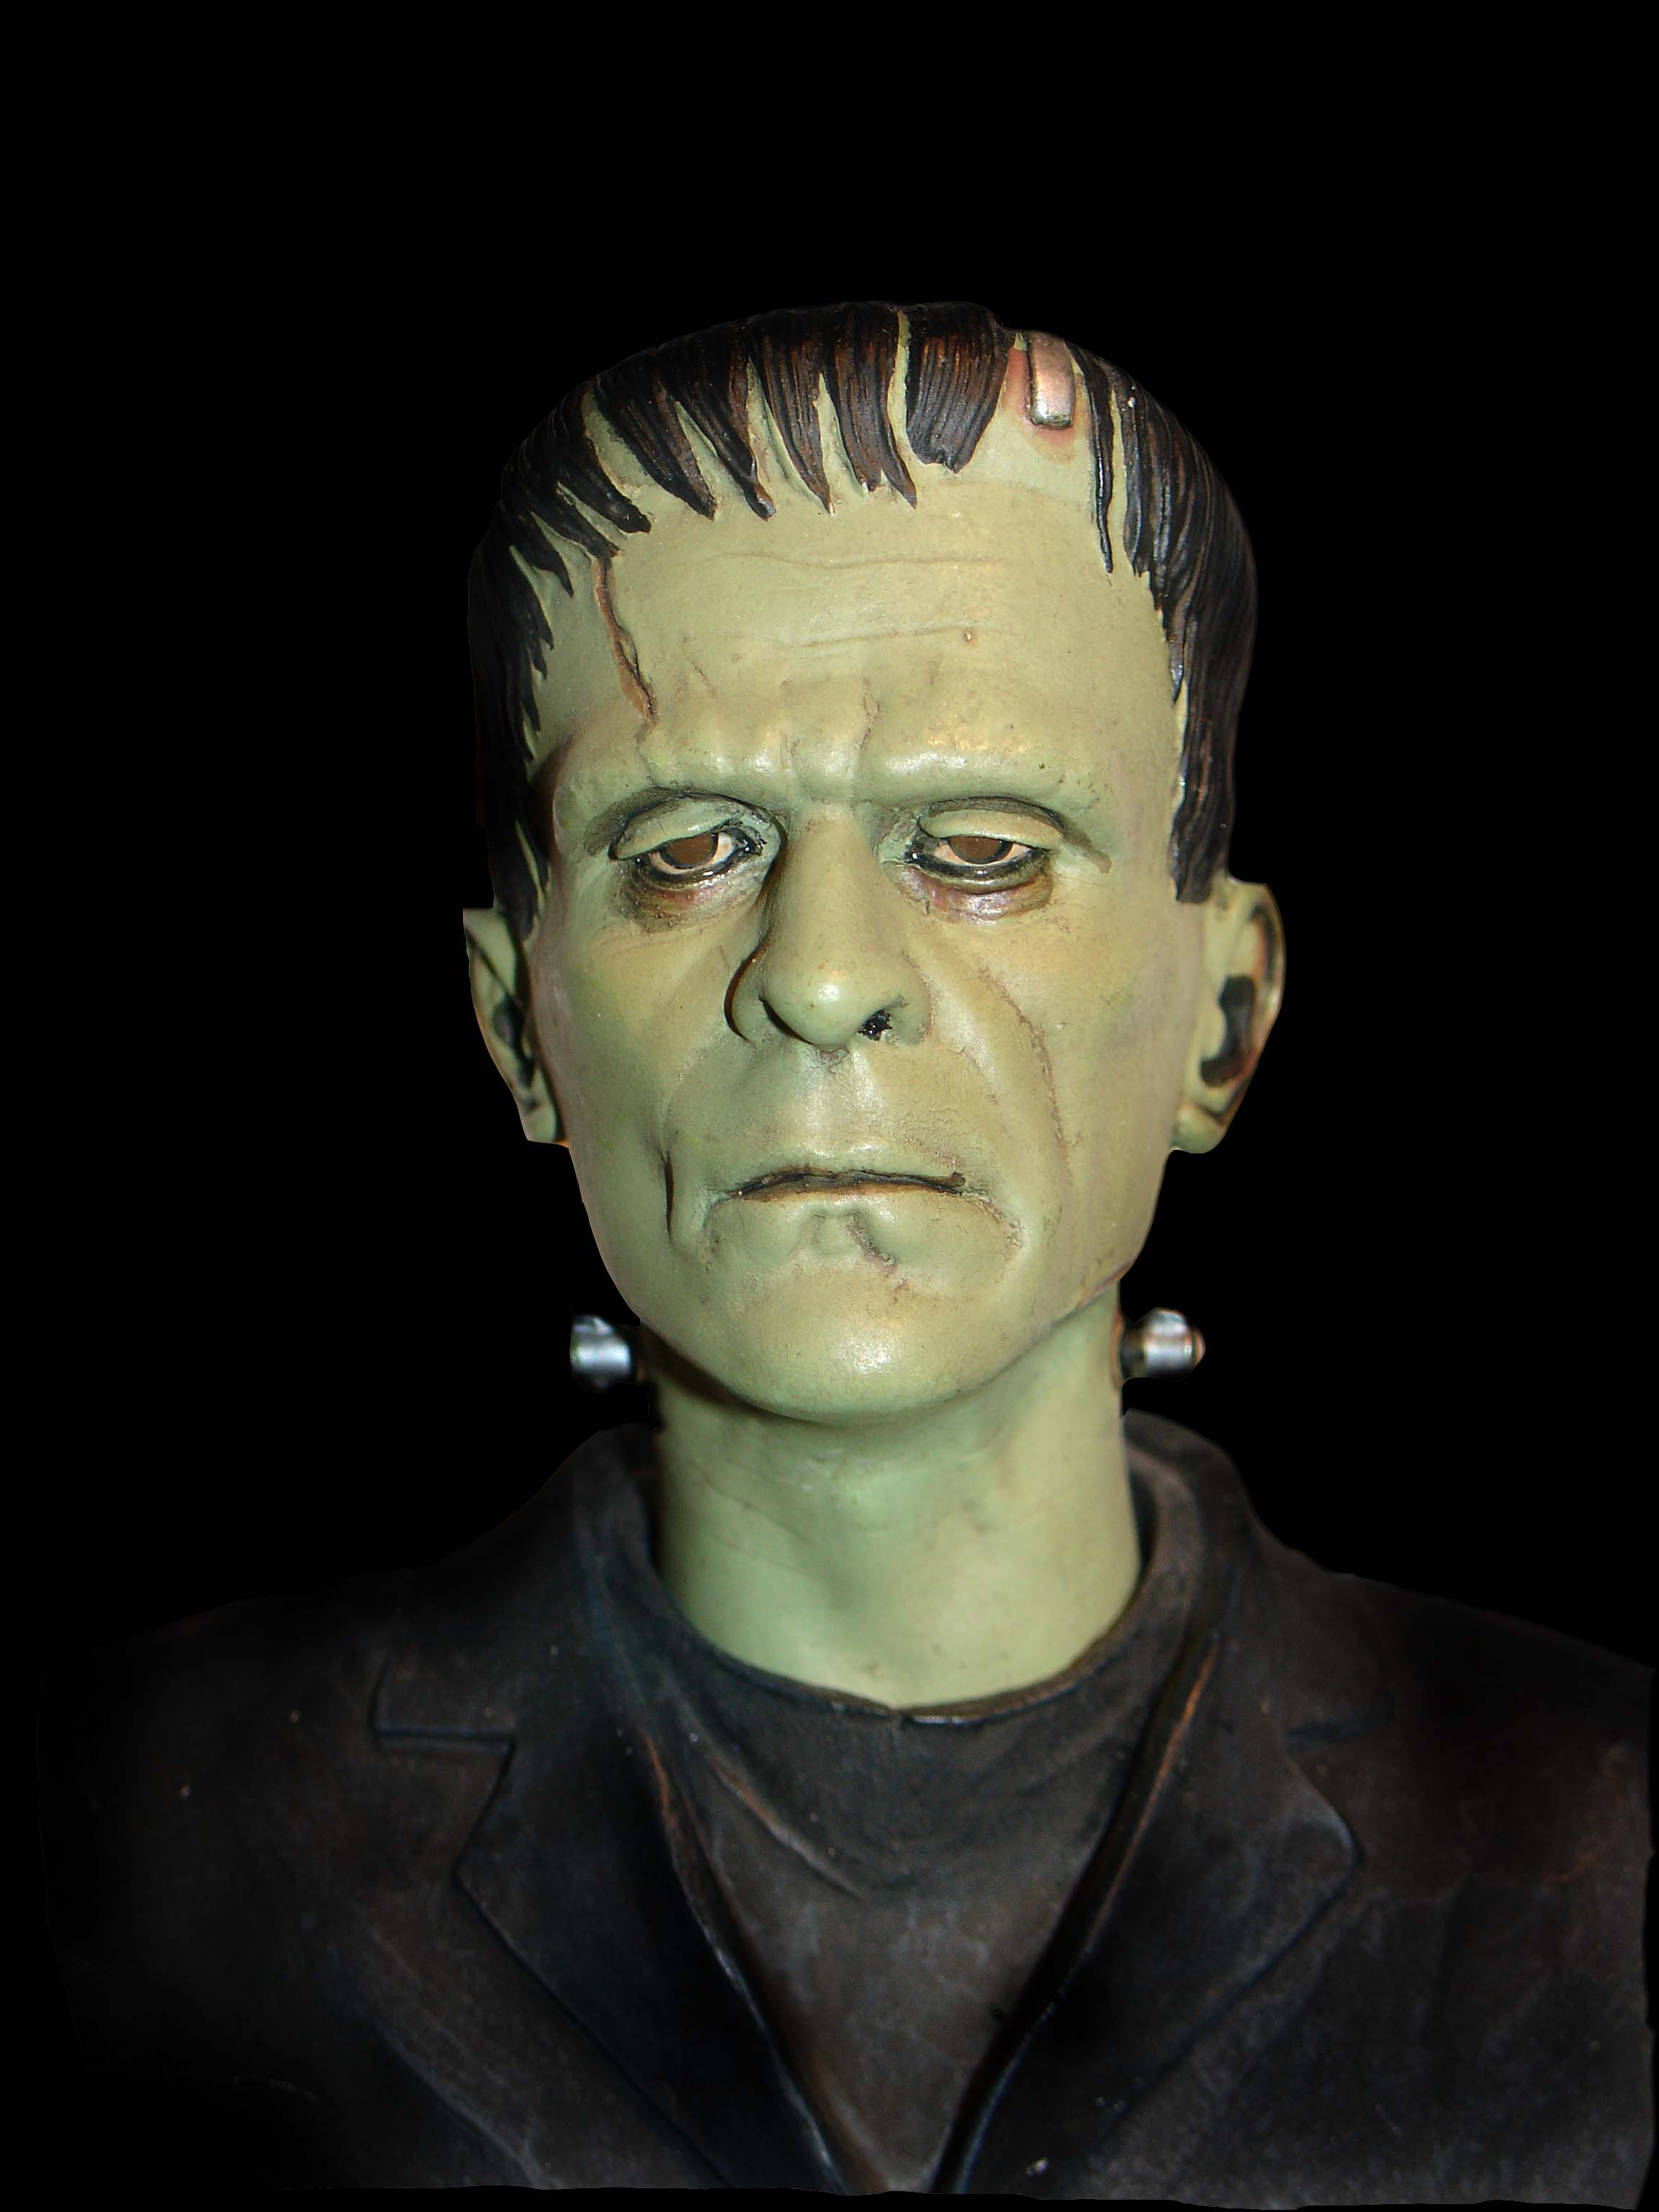 frankensteins failure from his own initial desire Frankenstein power of nature essays and  the story follows his search for friendship and both frankensteins and his creations  frankenstein abhors his own.